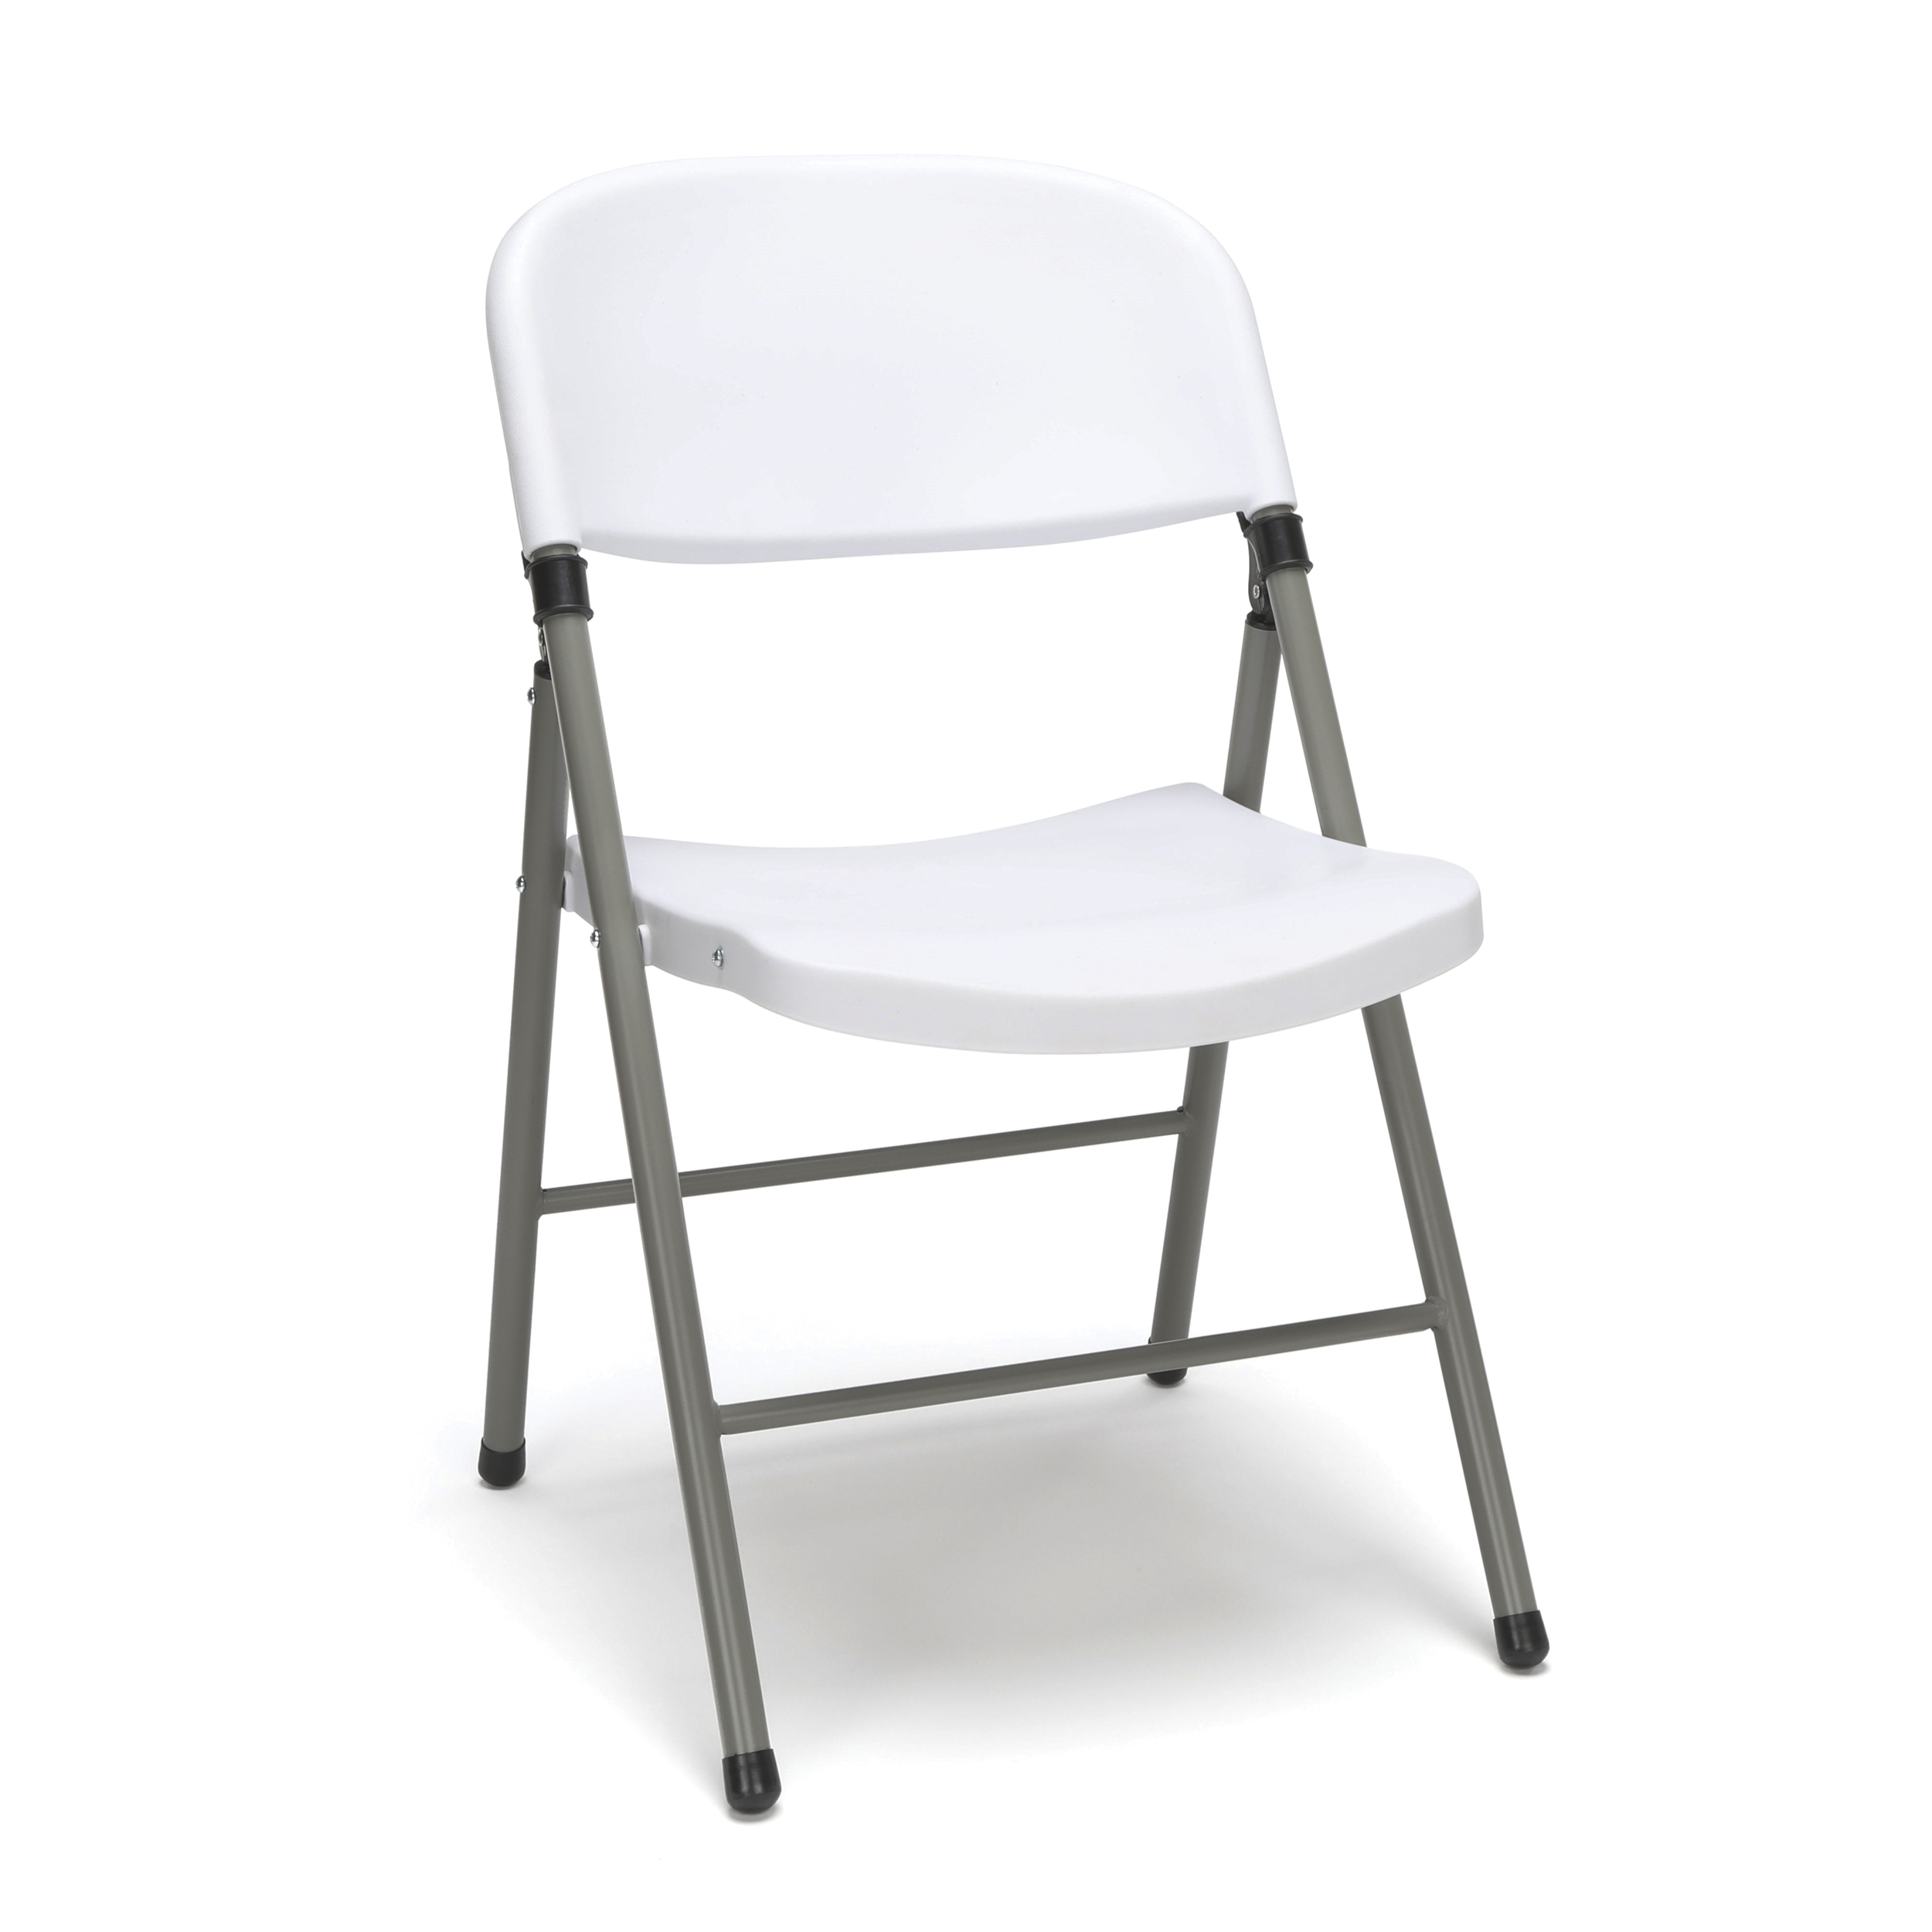 Marvelous Essentials By Ofm Ess 5000 Plastic Folding Chair White Pack Of 4 Evergreenethics Interior Chair Design Evergreenethicsorg